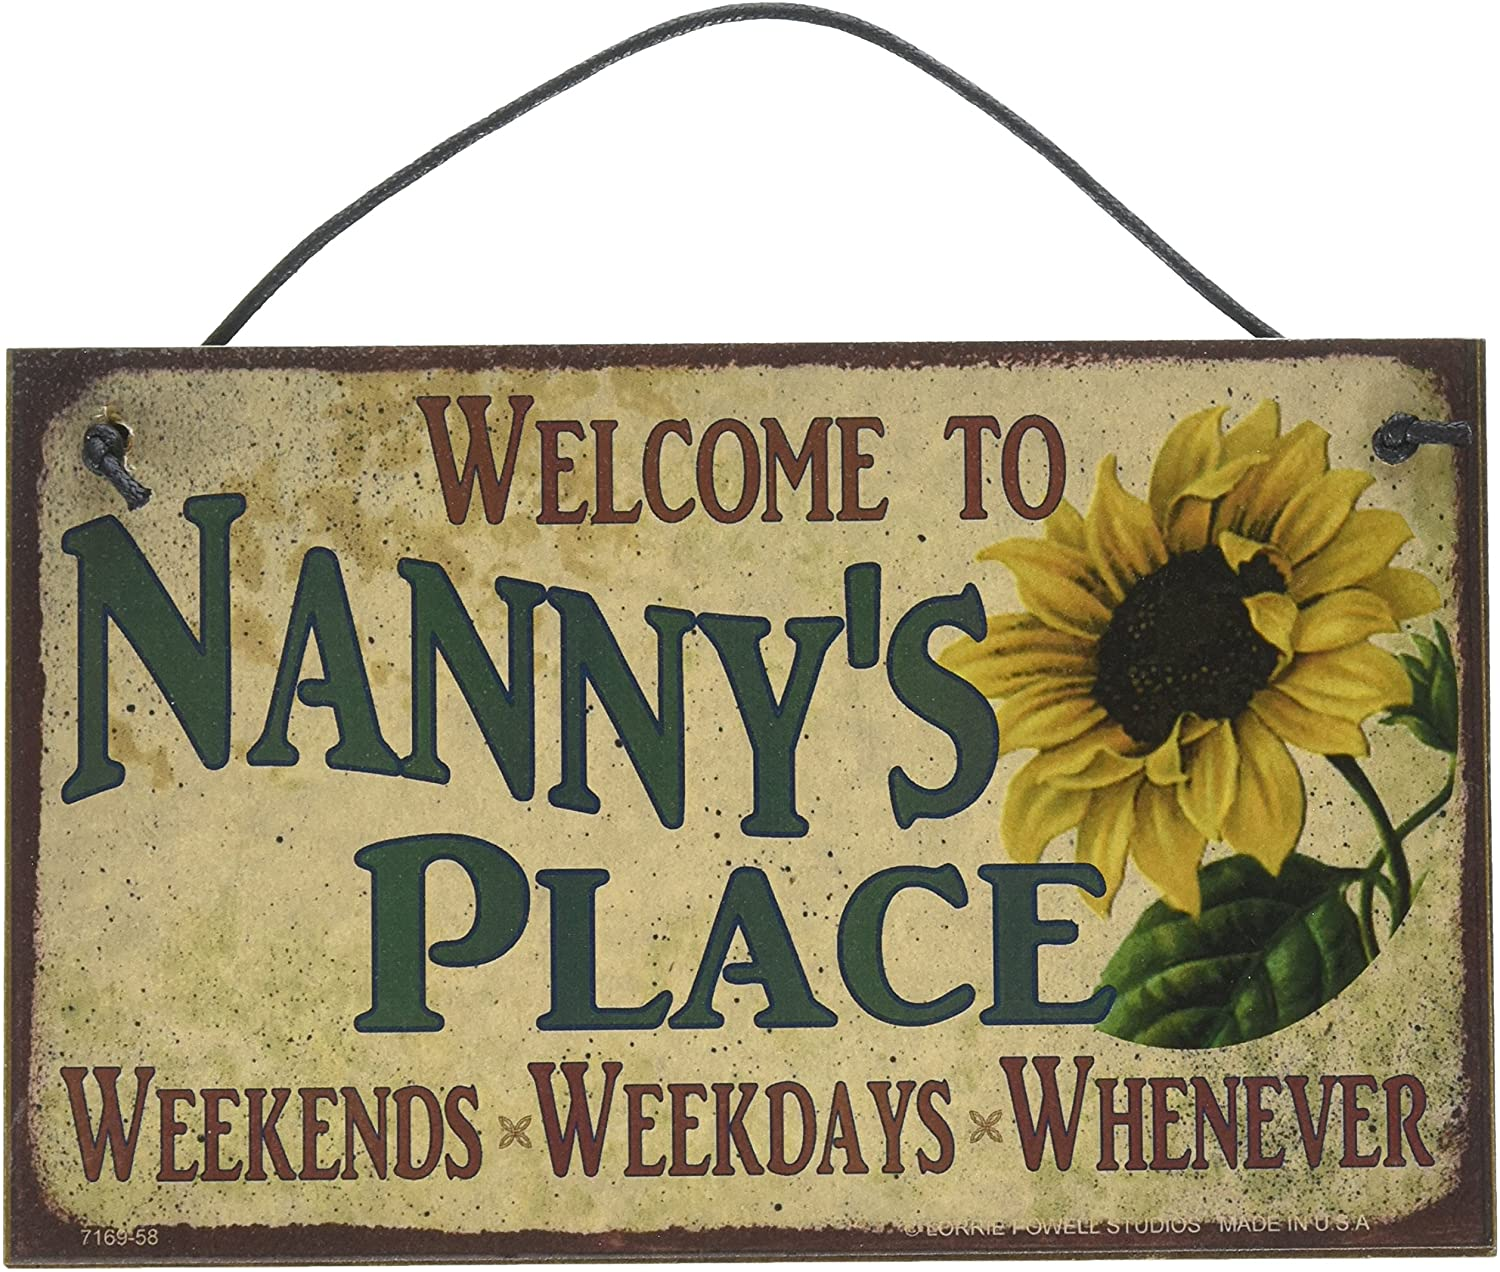 Egbert's Treasures 5x8 Vintage Style Sign with Sunflower Saying Welcome to Nanny's Place Weekends, Weekdays, Whenever Decorative Fun Universal Household Family Signs for Grandma (5x8)